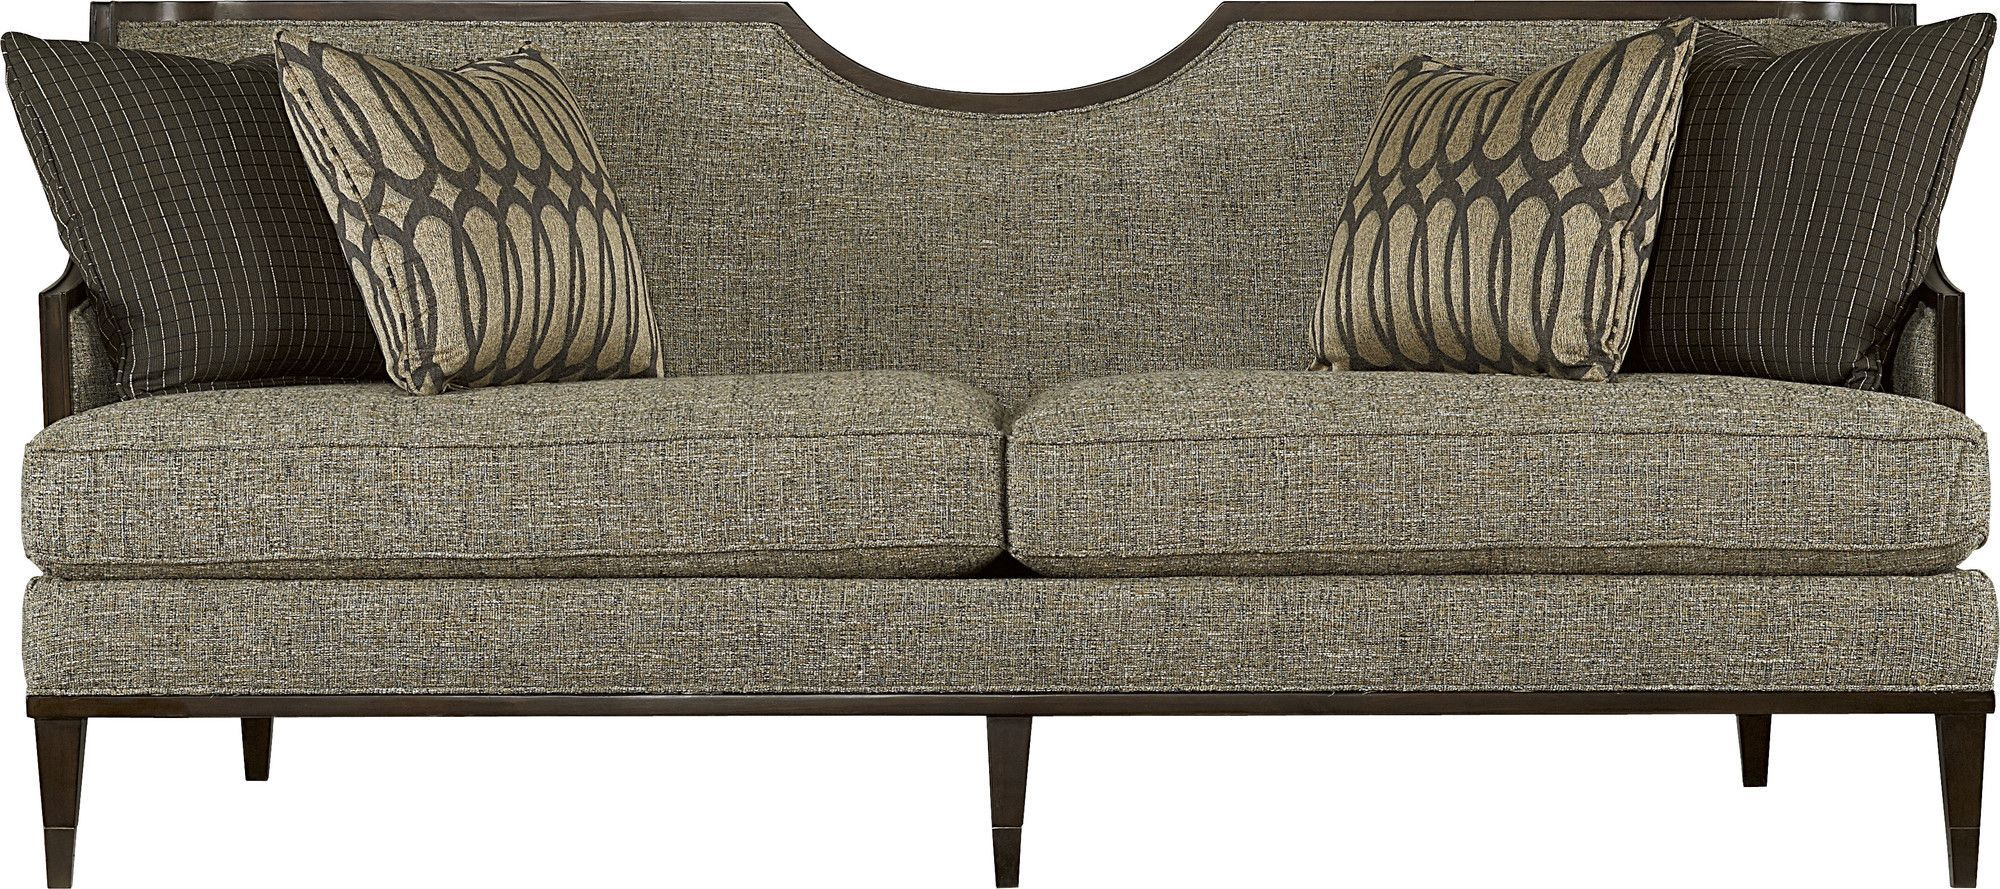 Intrigue harper mineral sofa products pinterest products